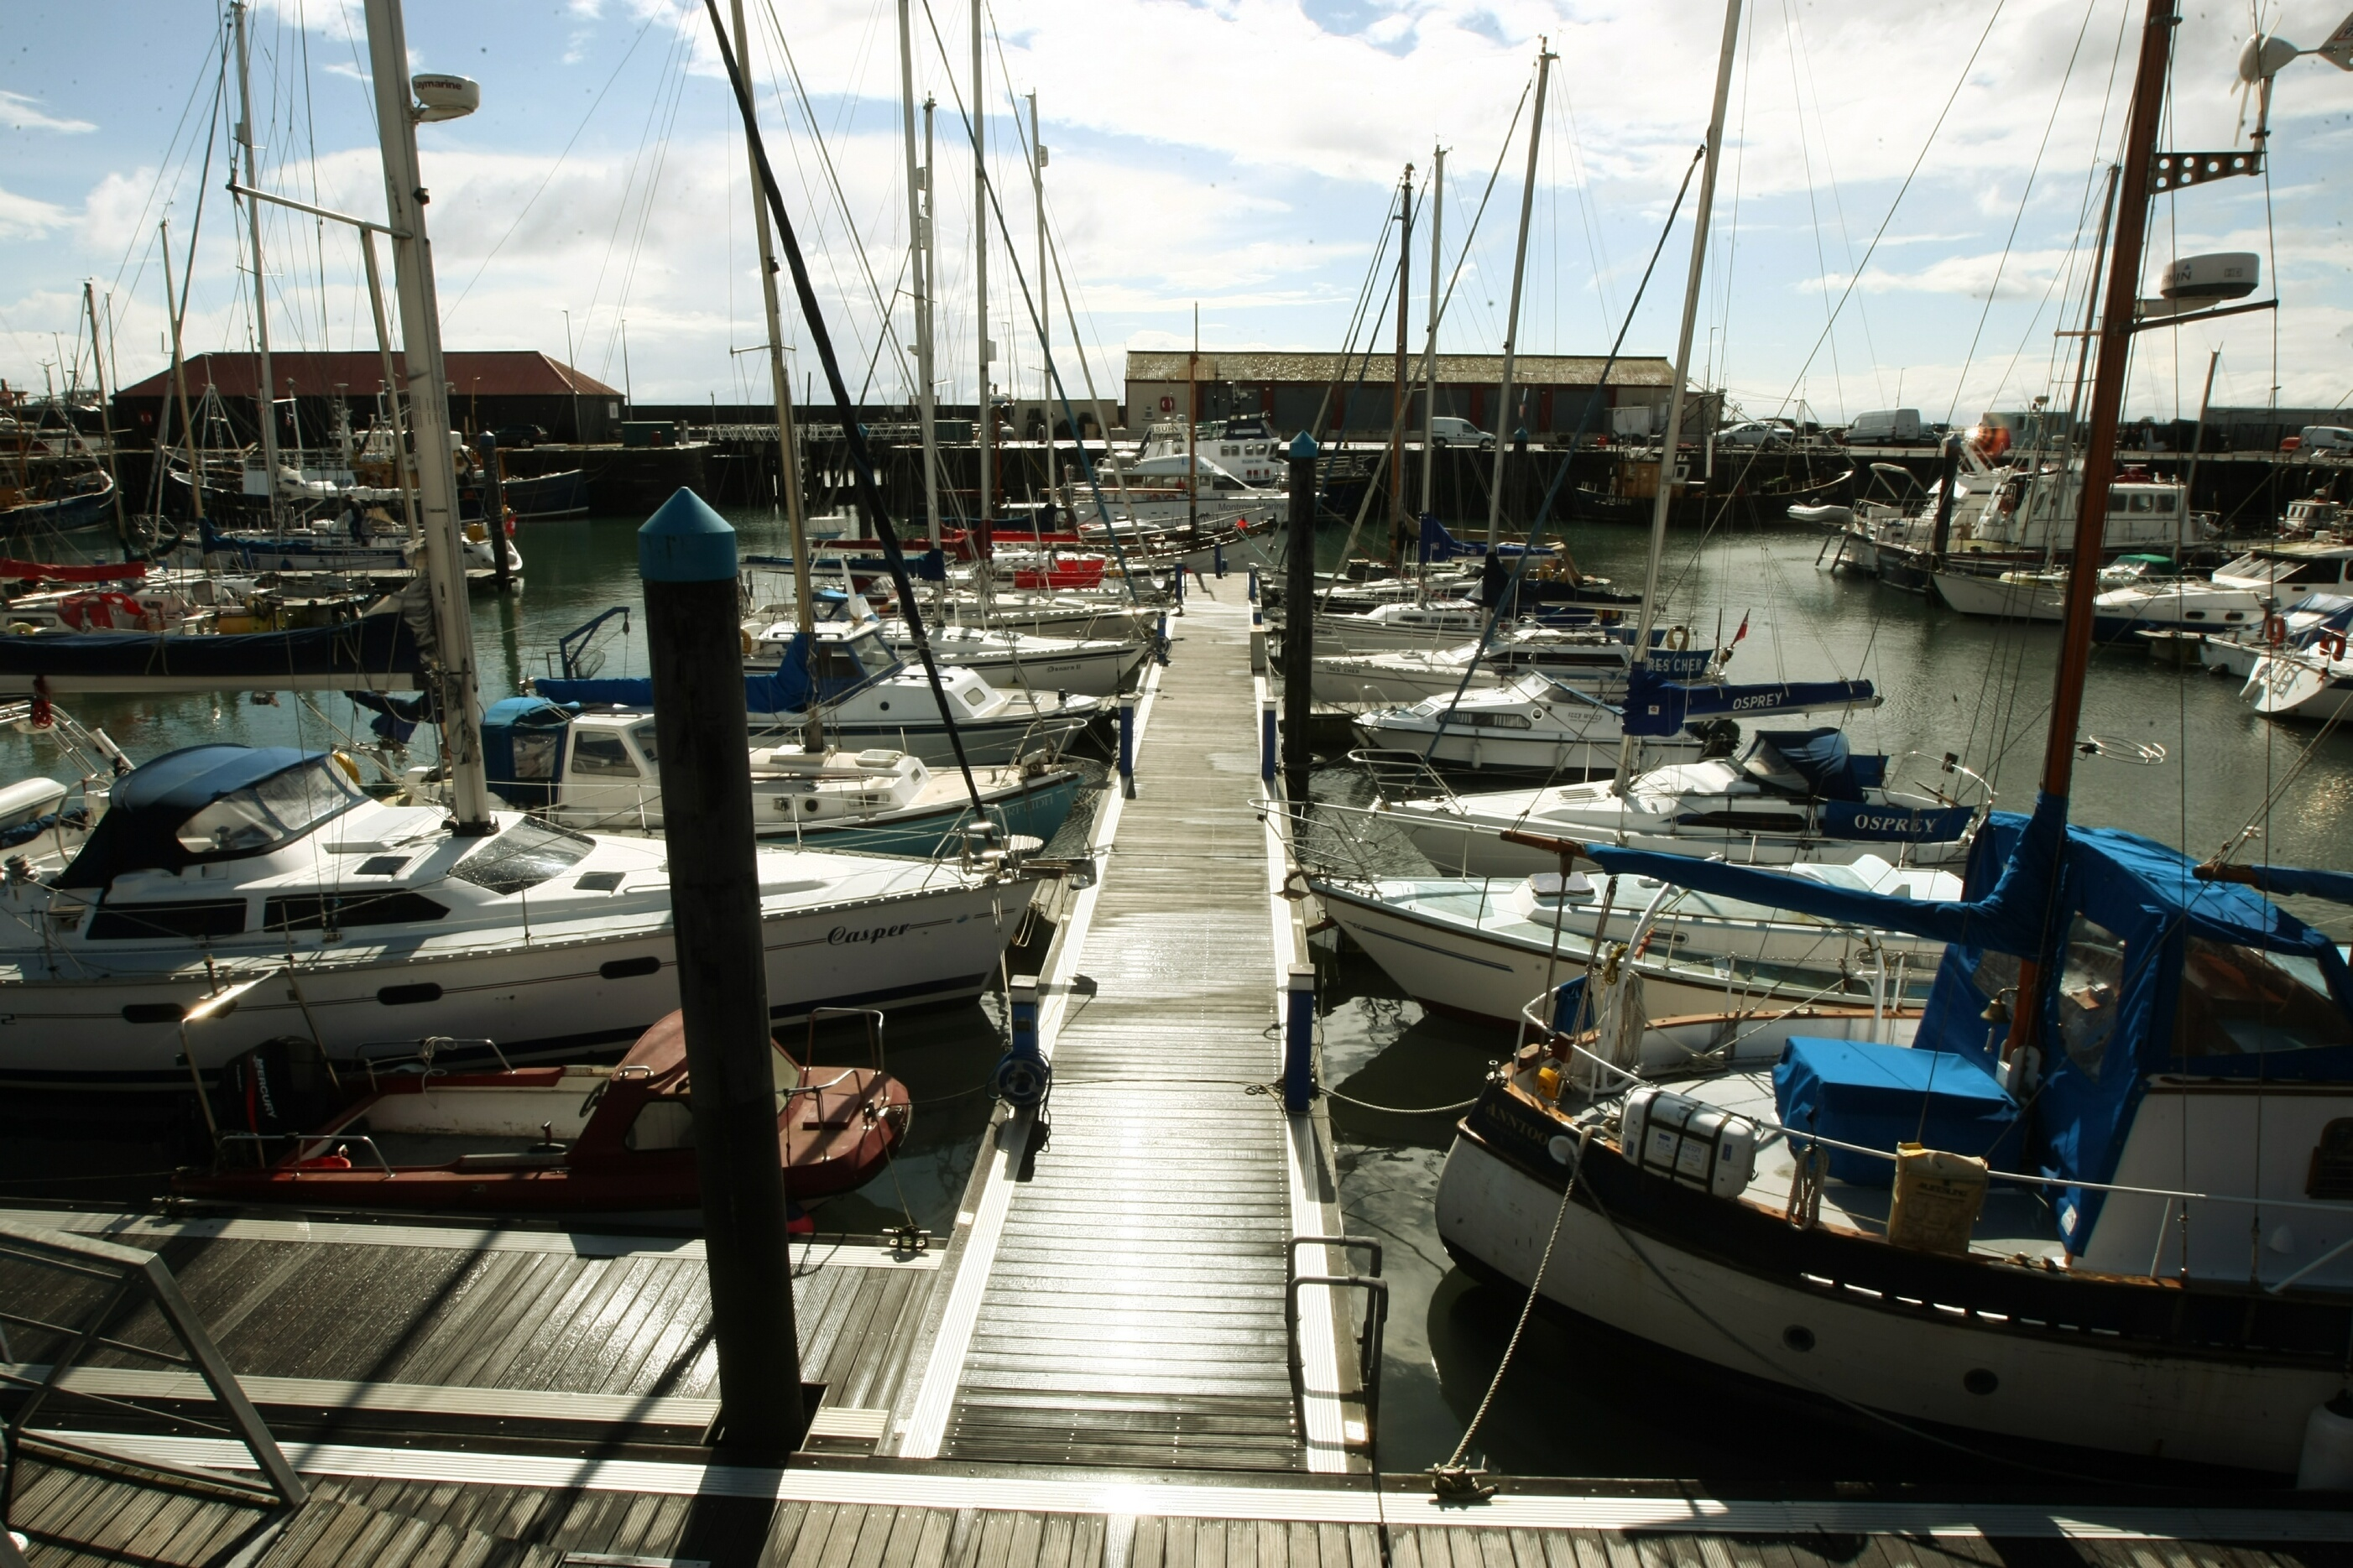 Berths at Arbroath marina have proved popular